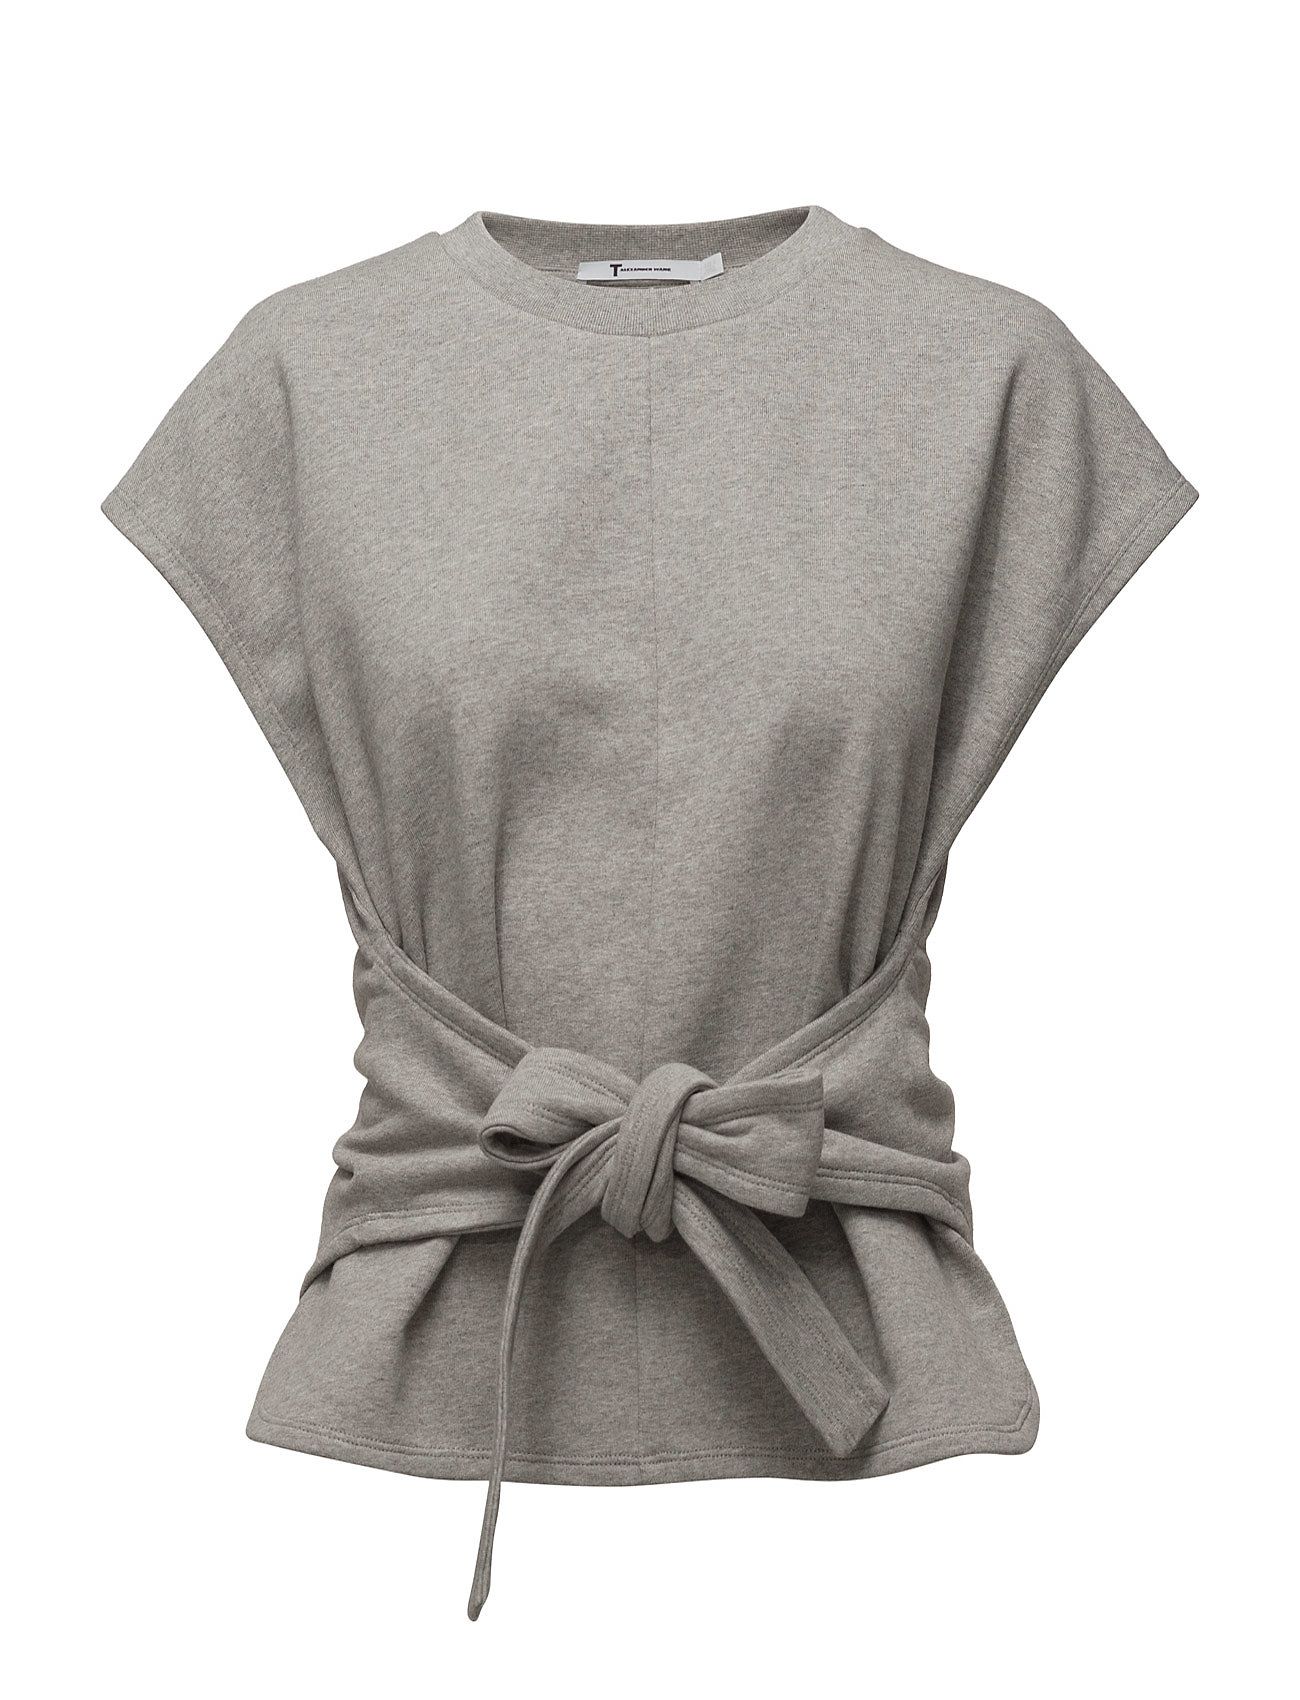 t by alexander wang S/s wrap front top fra boozt.com dk